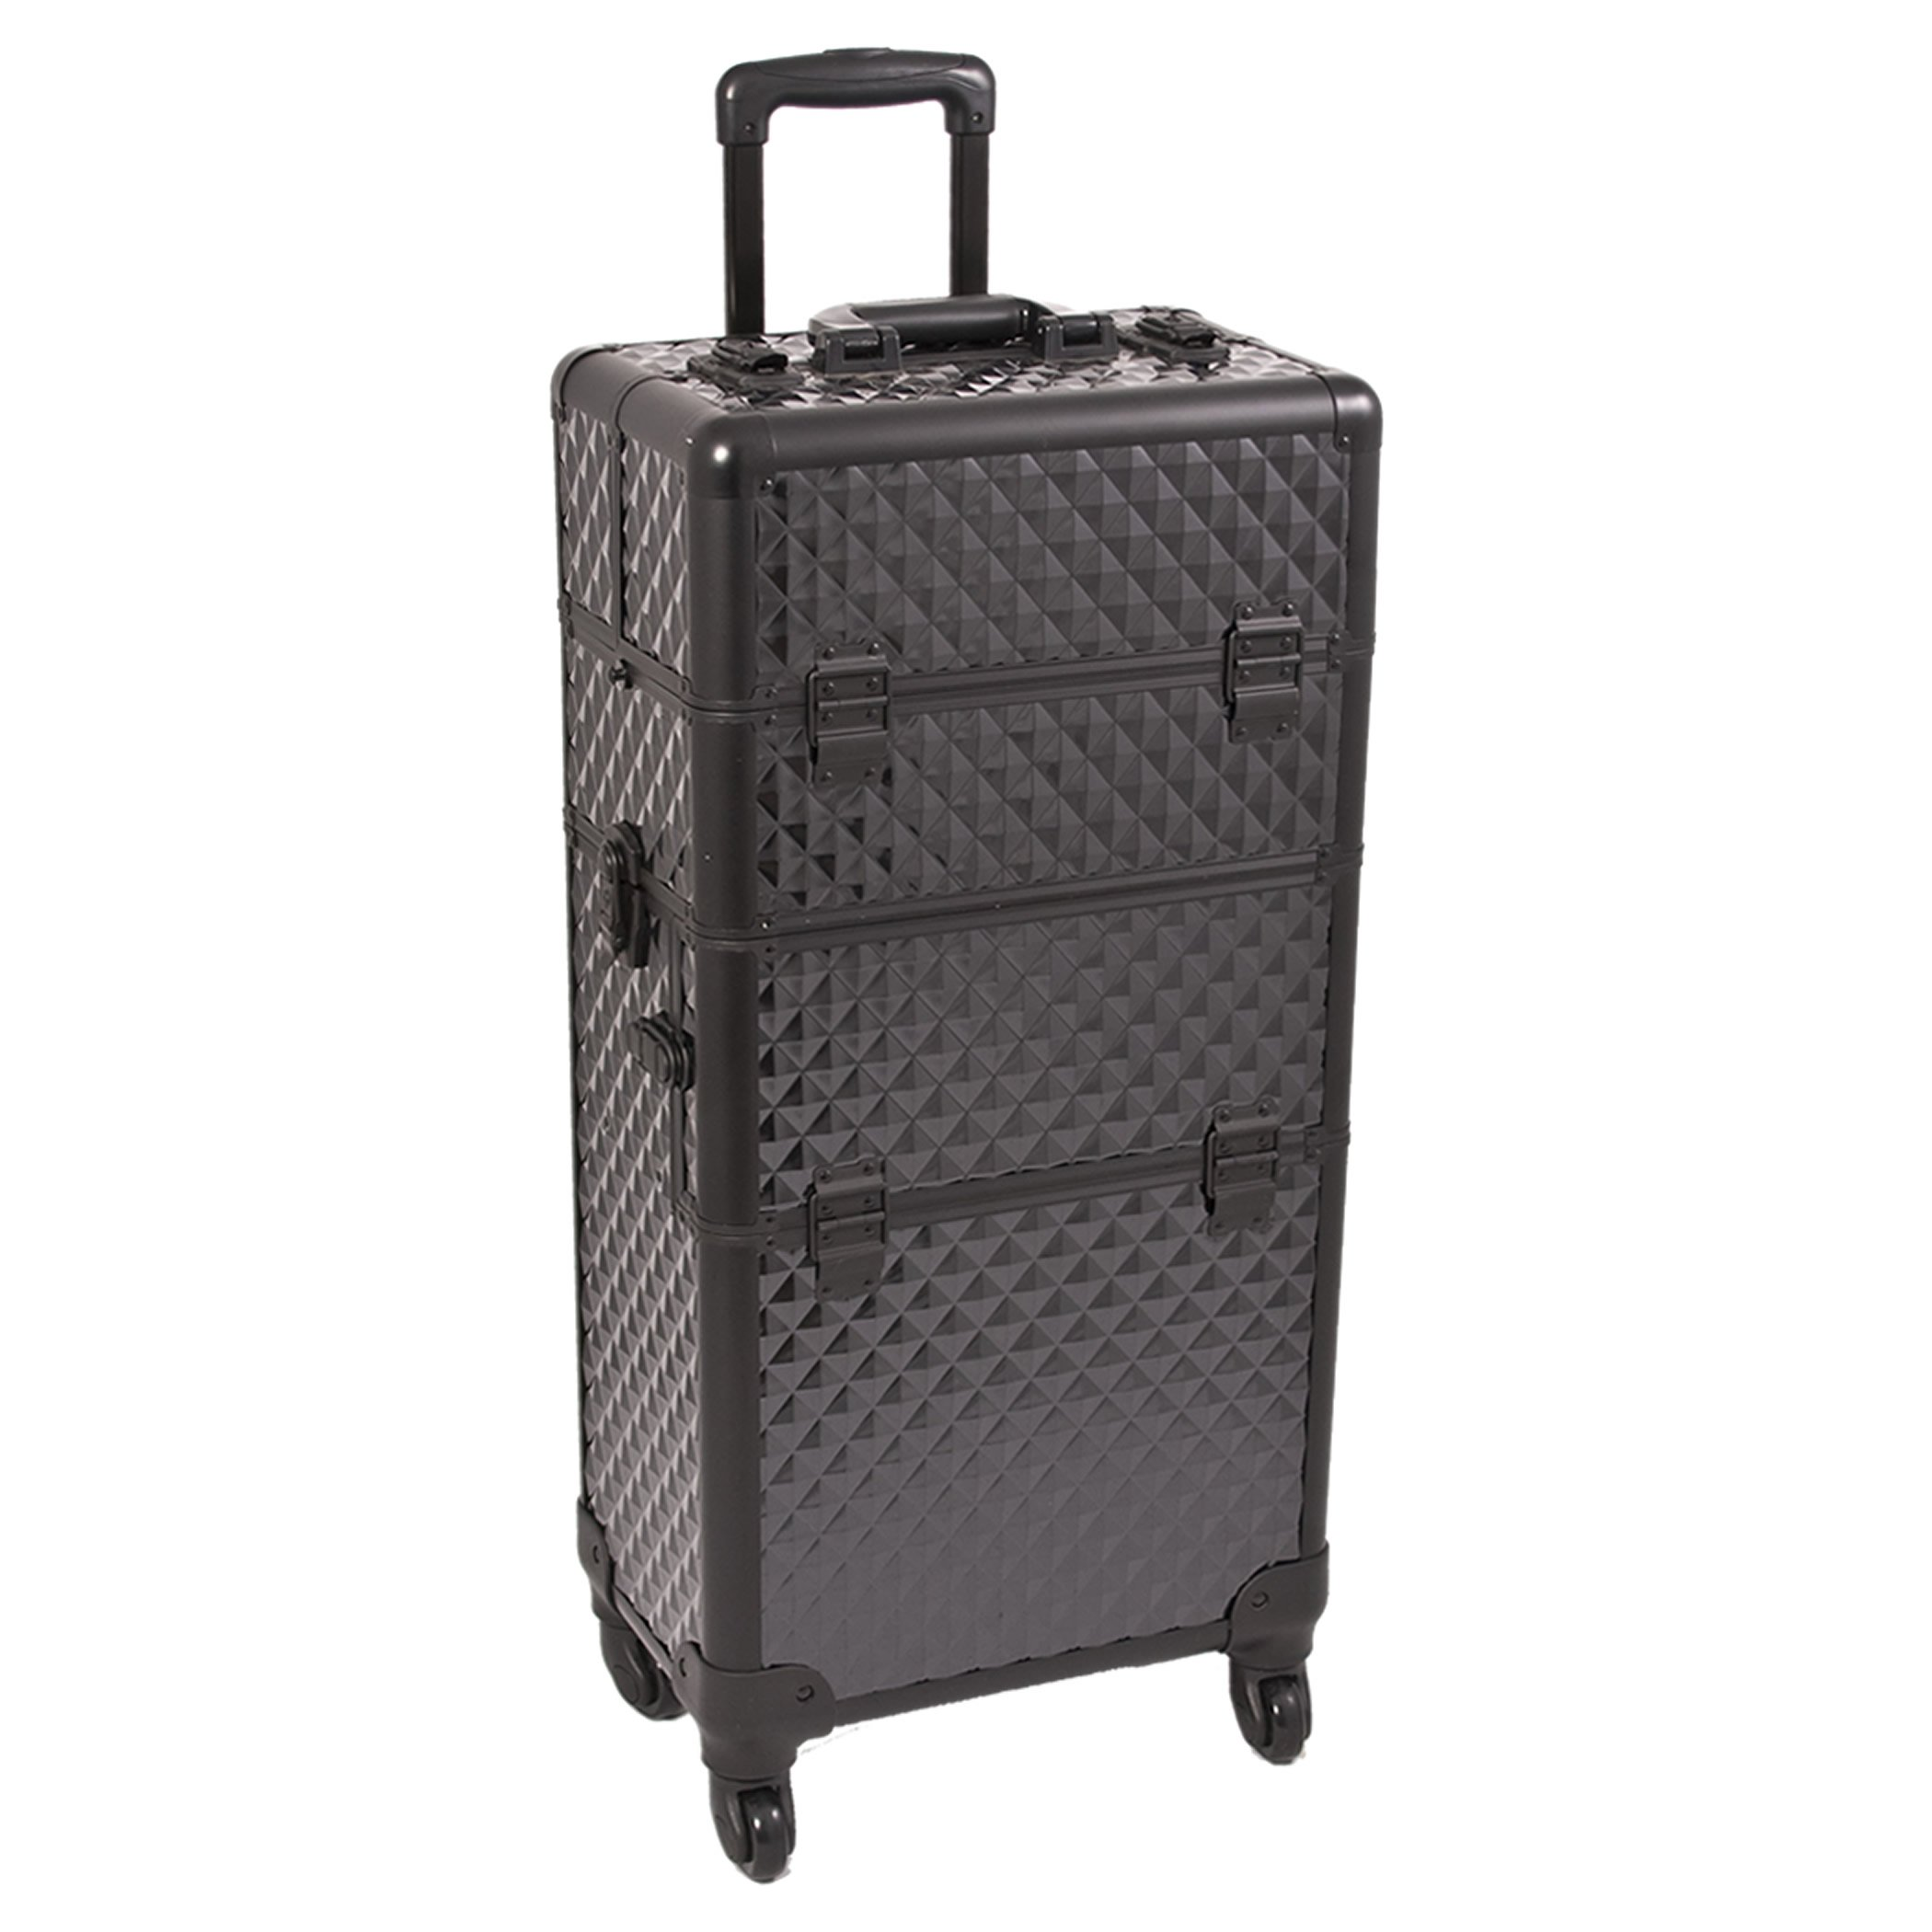 Sunrise Rolling Makeup Train Case 2 in 1 Professional Artist I3661, 8 Trays and 1 Removable Tray, 4 Wheel Spinner, Locking with  Mirror and Shoulder Strap, Black Diamond by SunRise